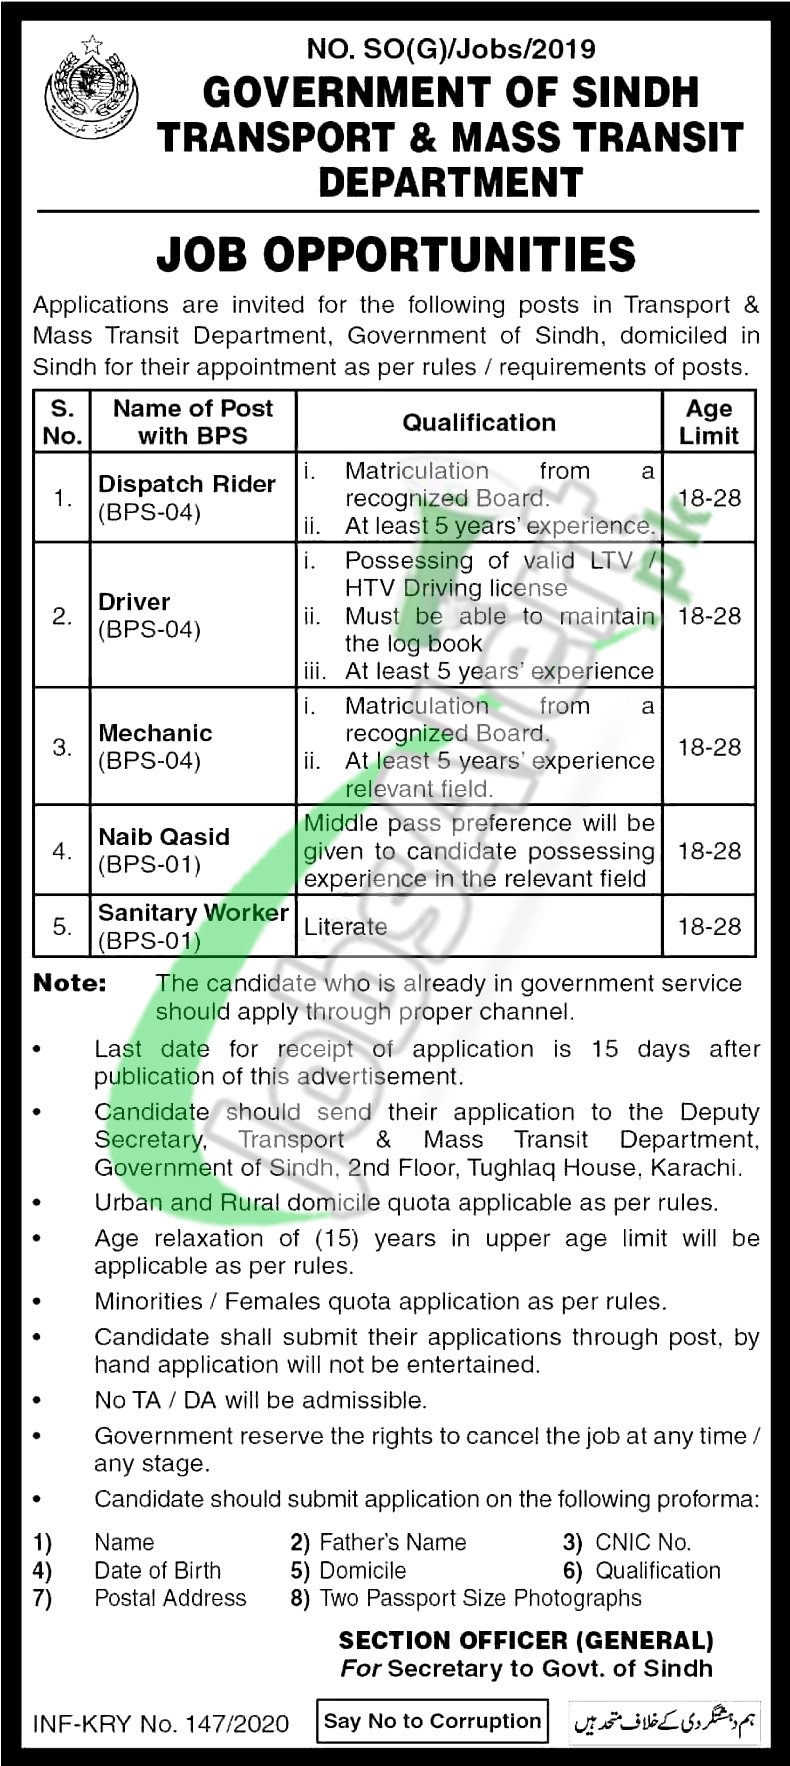 Government of Sindh Transport & Mass Transit Department Job Opportunities